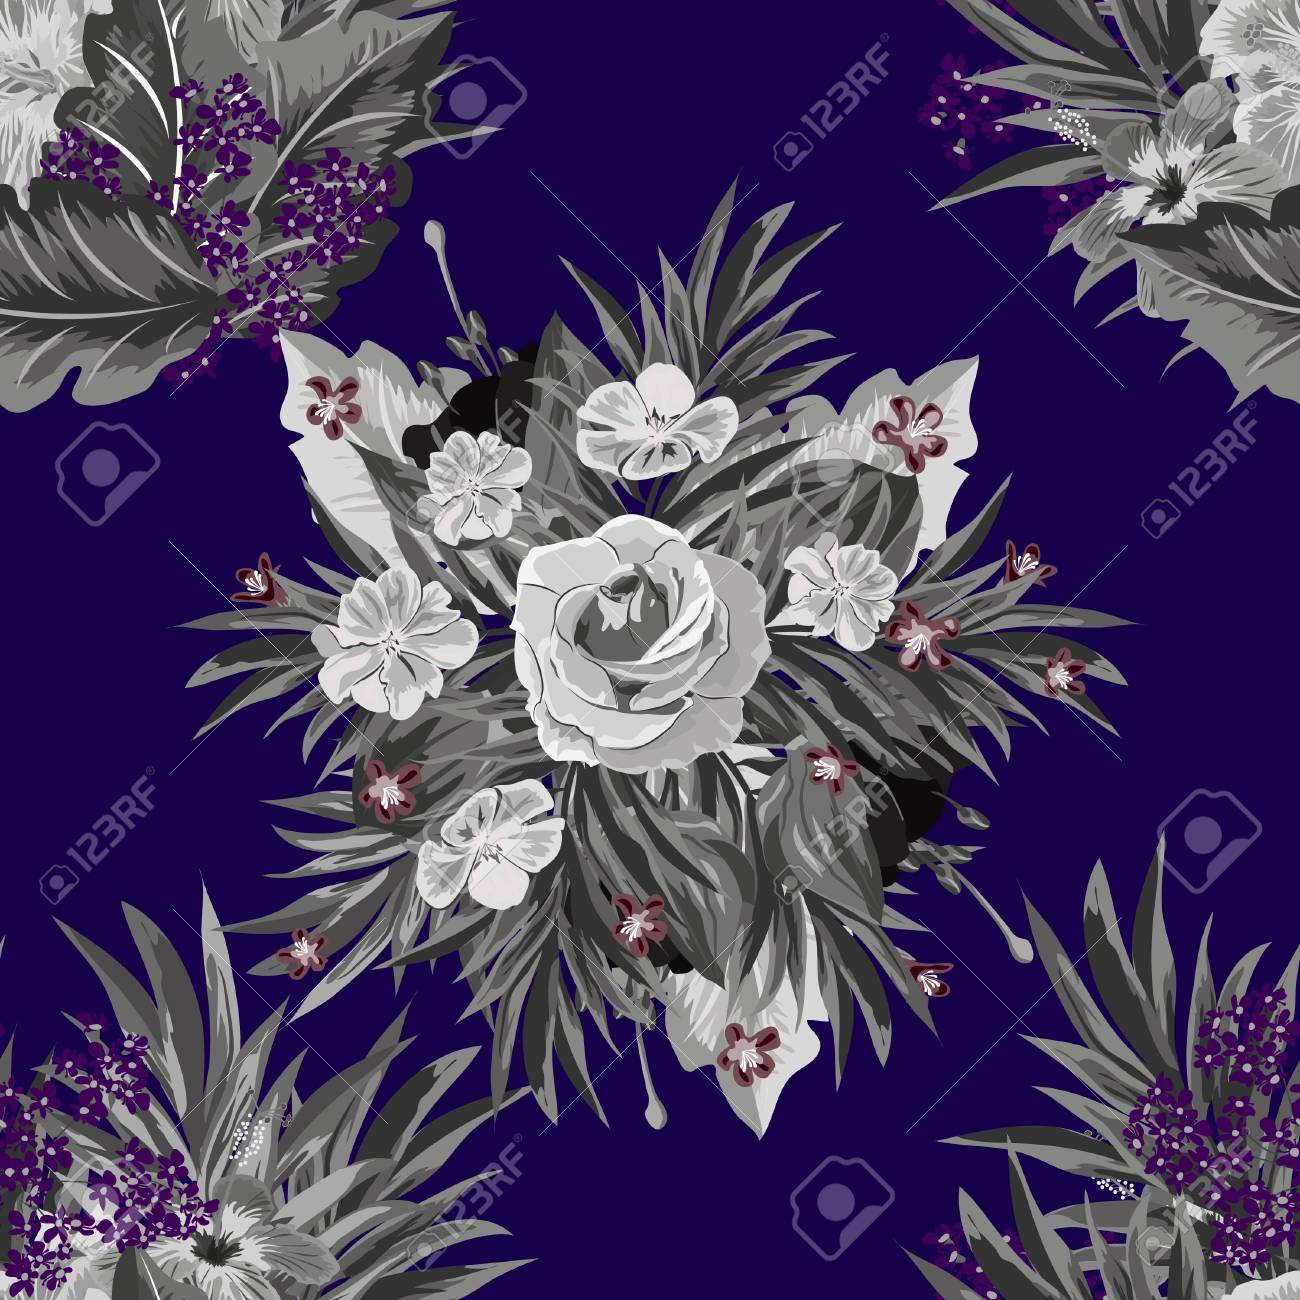 Seamless Monochrome Background With Tropical Flowers Design